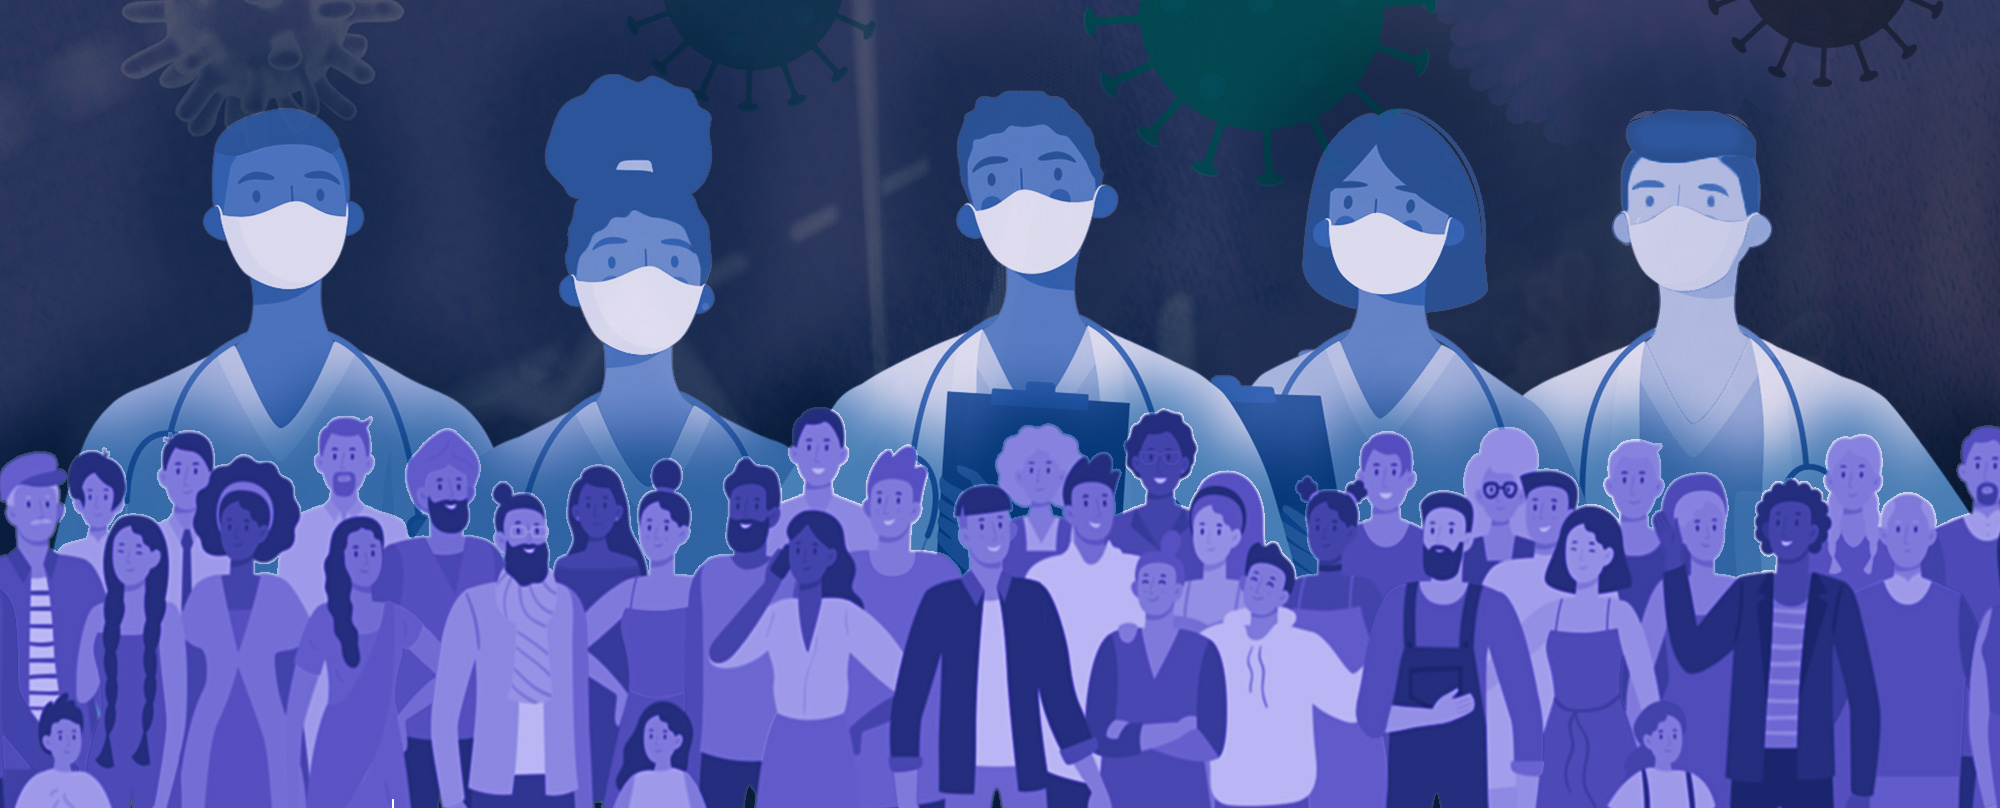 Conceptual illustration of healthcare providers and researchers wearing masks superimposed over a crowd of diverse people.